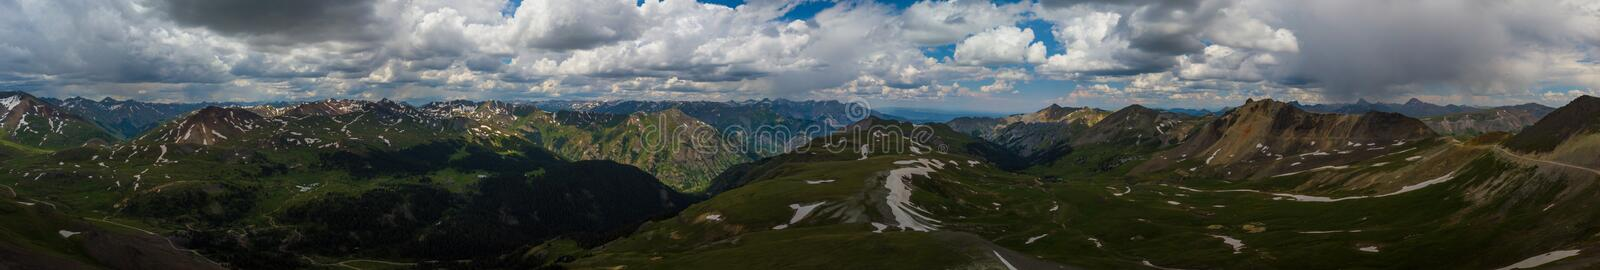 Engineer Pass Colorado view from the top, panoramic shot royalty free stock photos